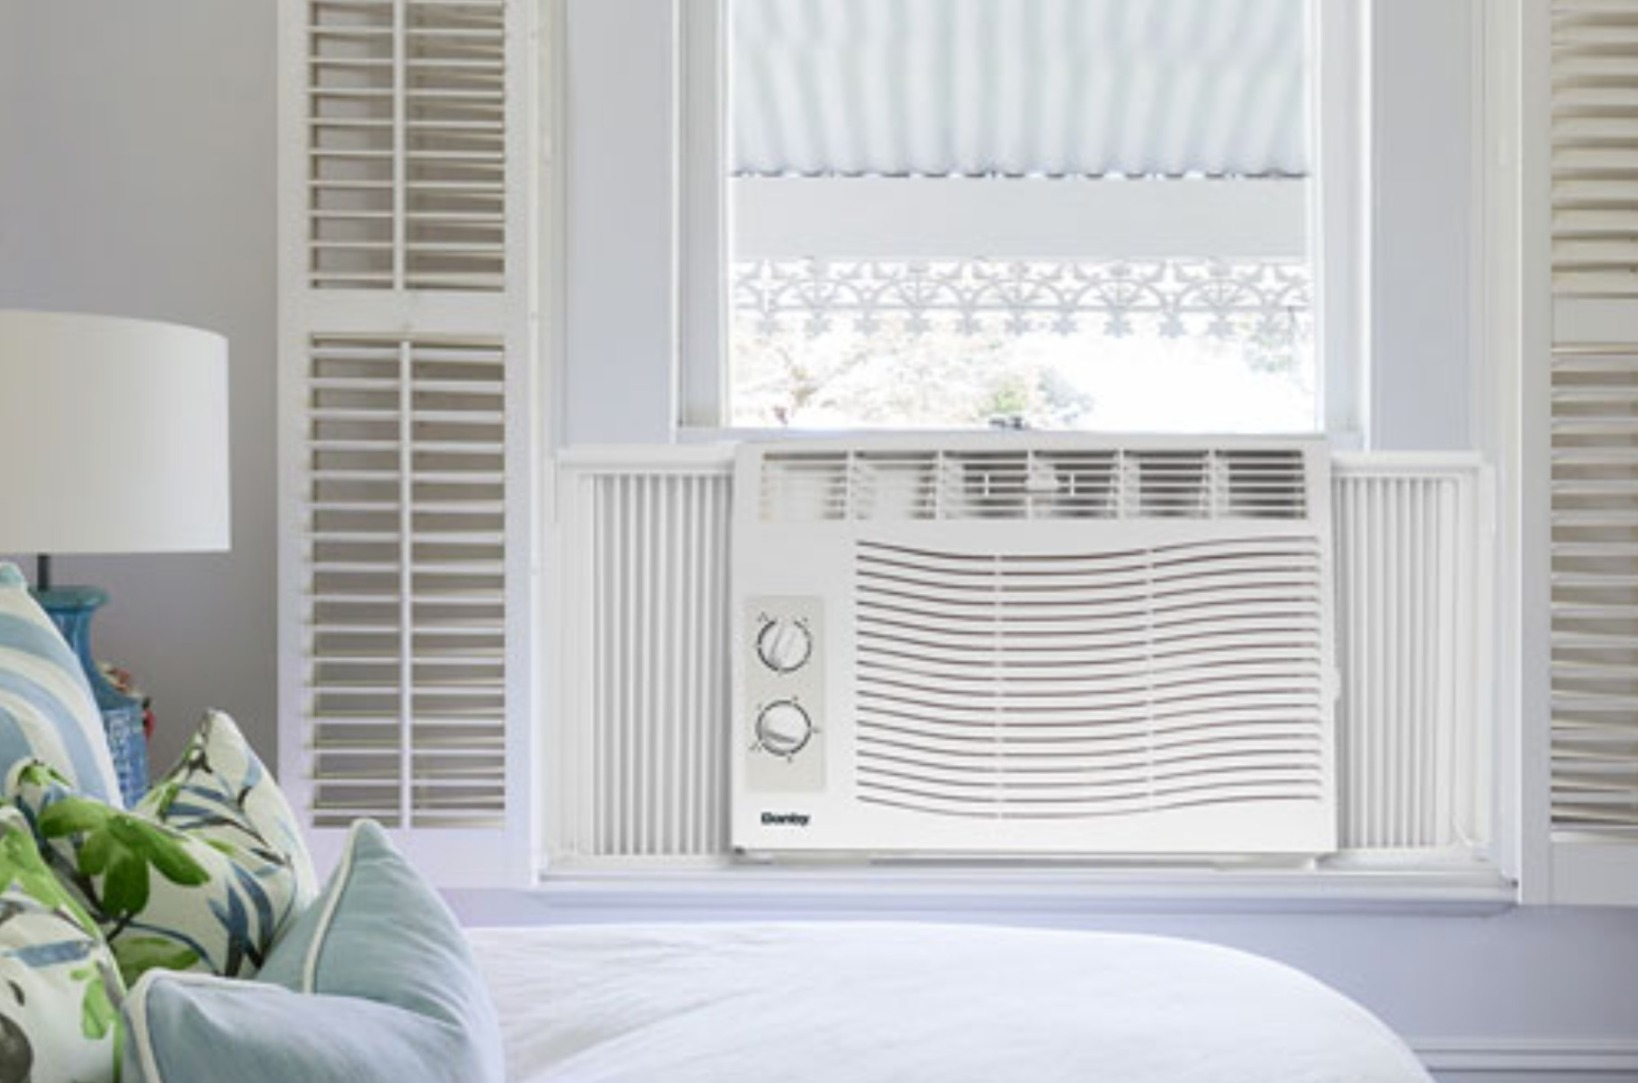 image of a window air conditioner sitting in a window